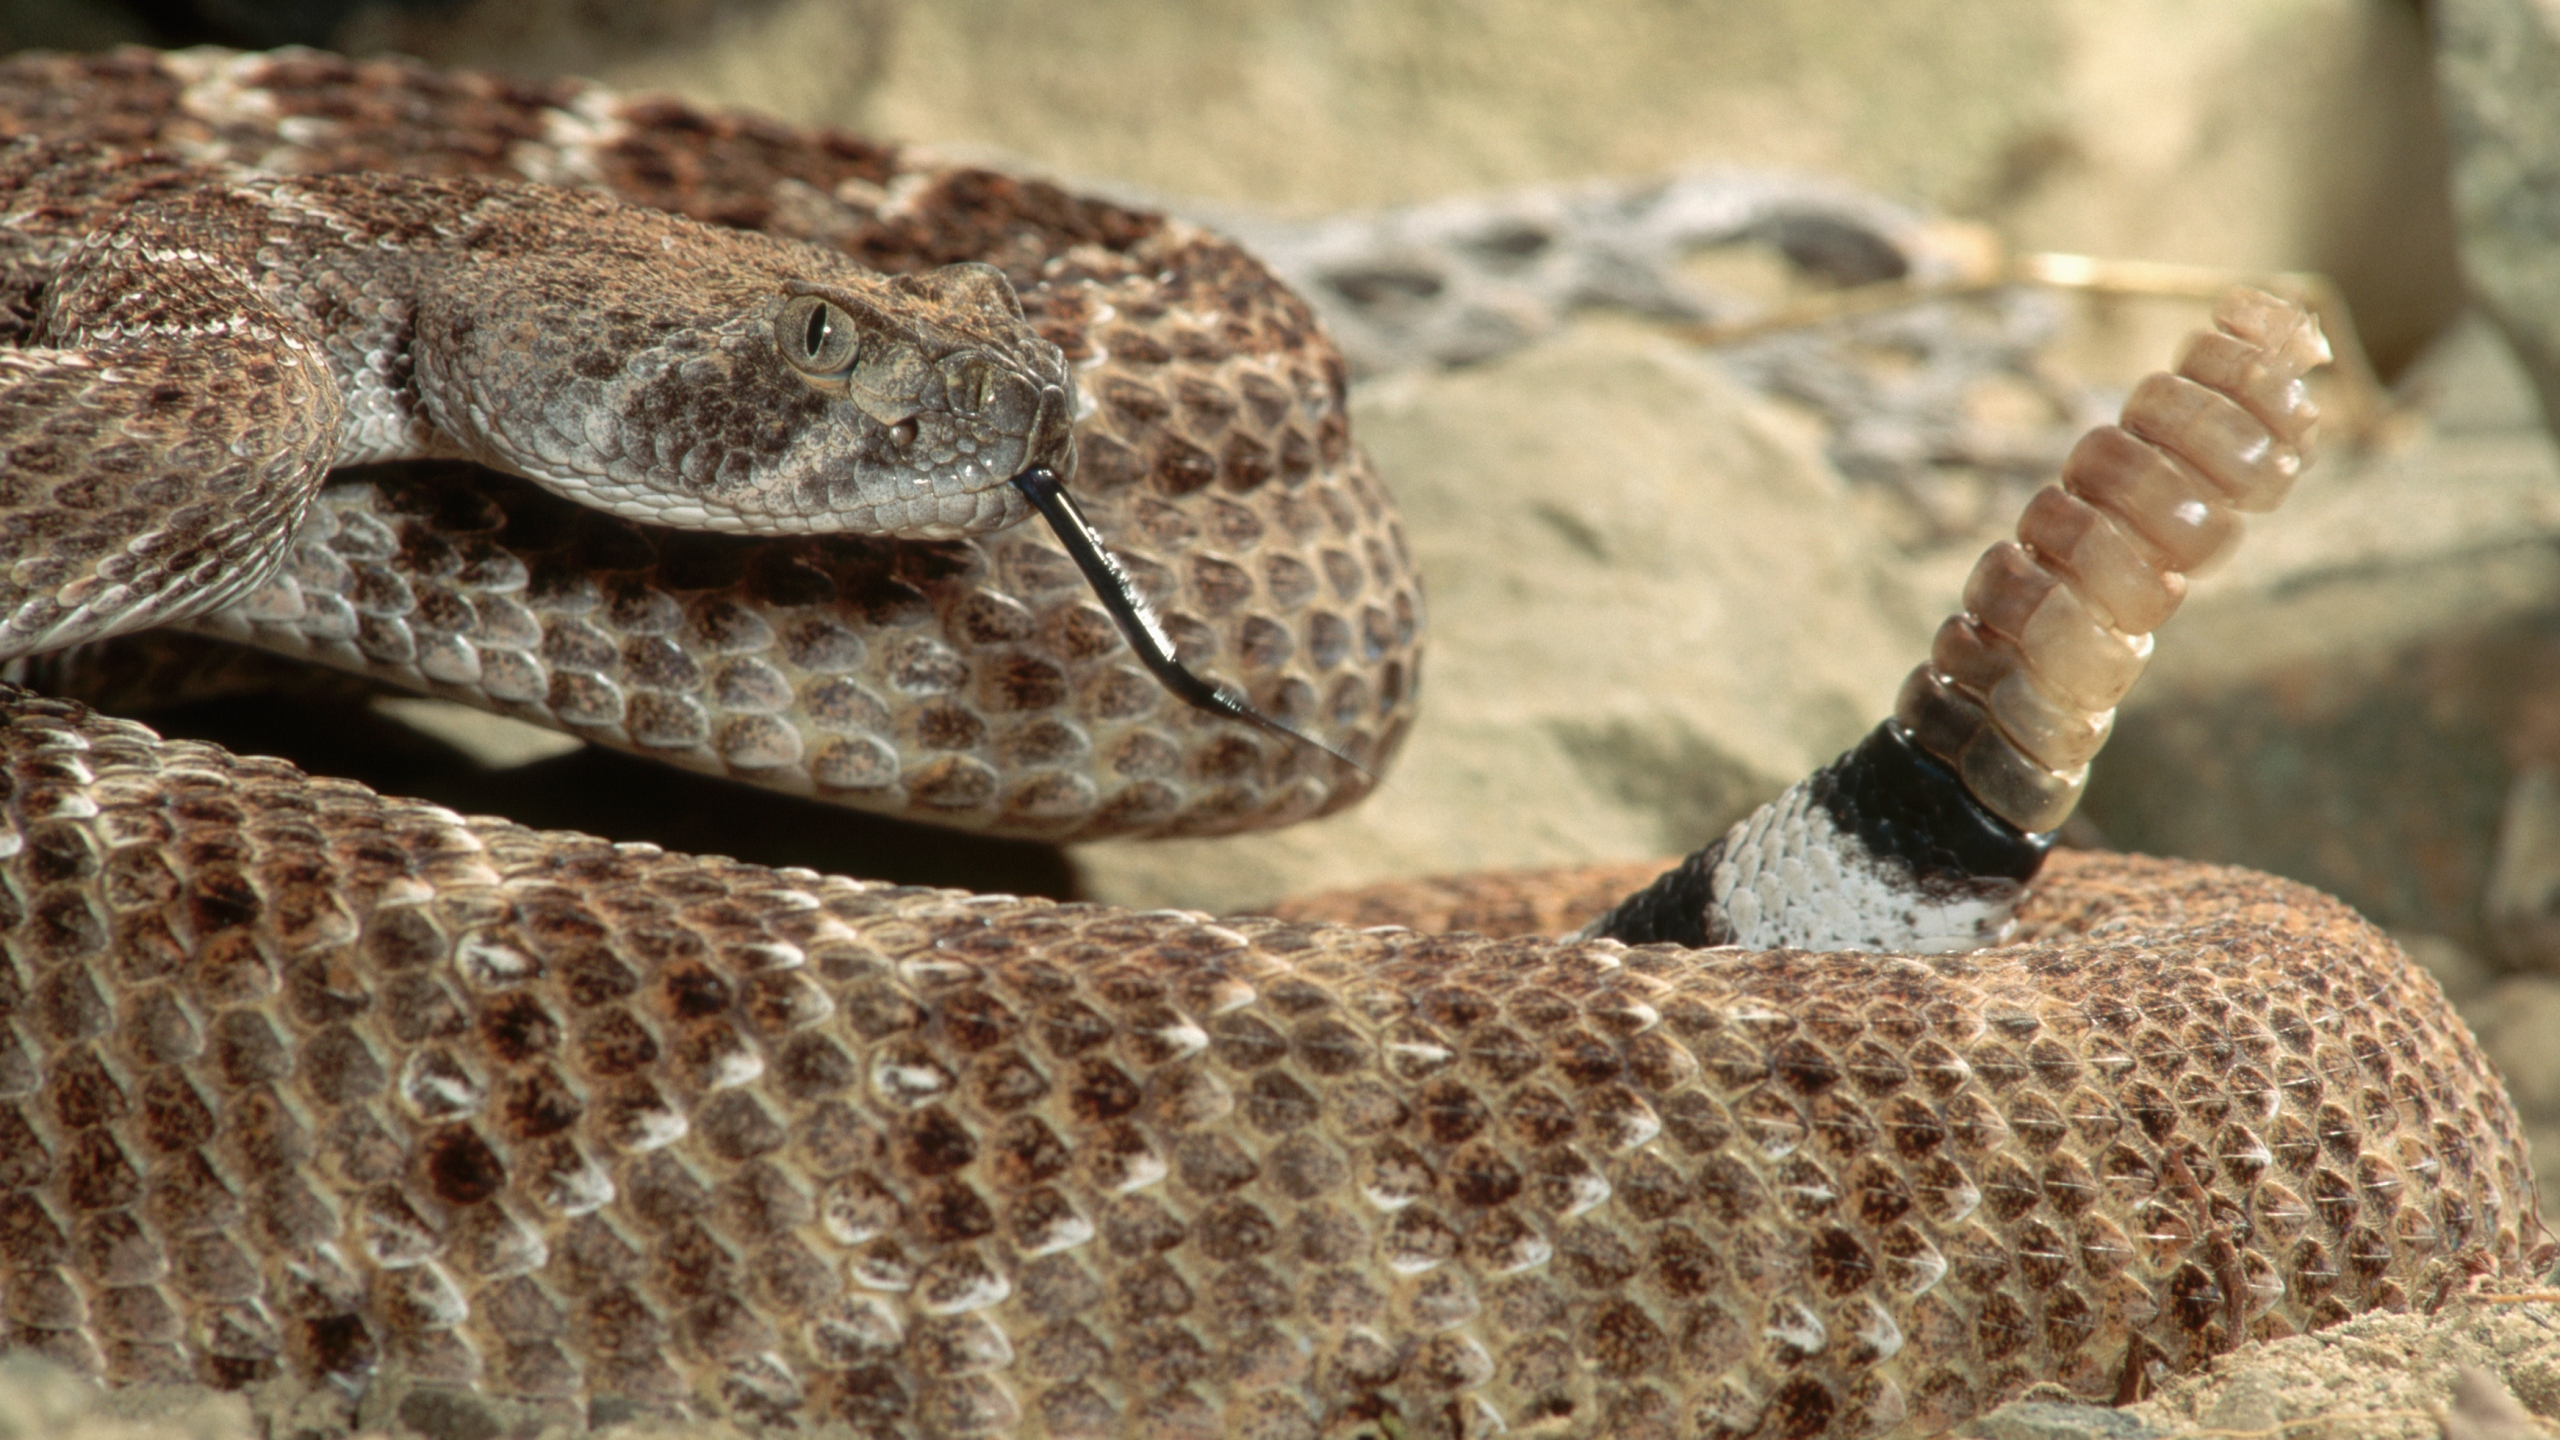 Rattlesnake bites California man who tried to pick it up with BBQ tongs |  KXAN Austin